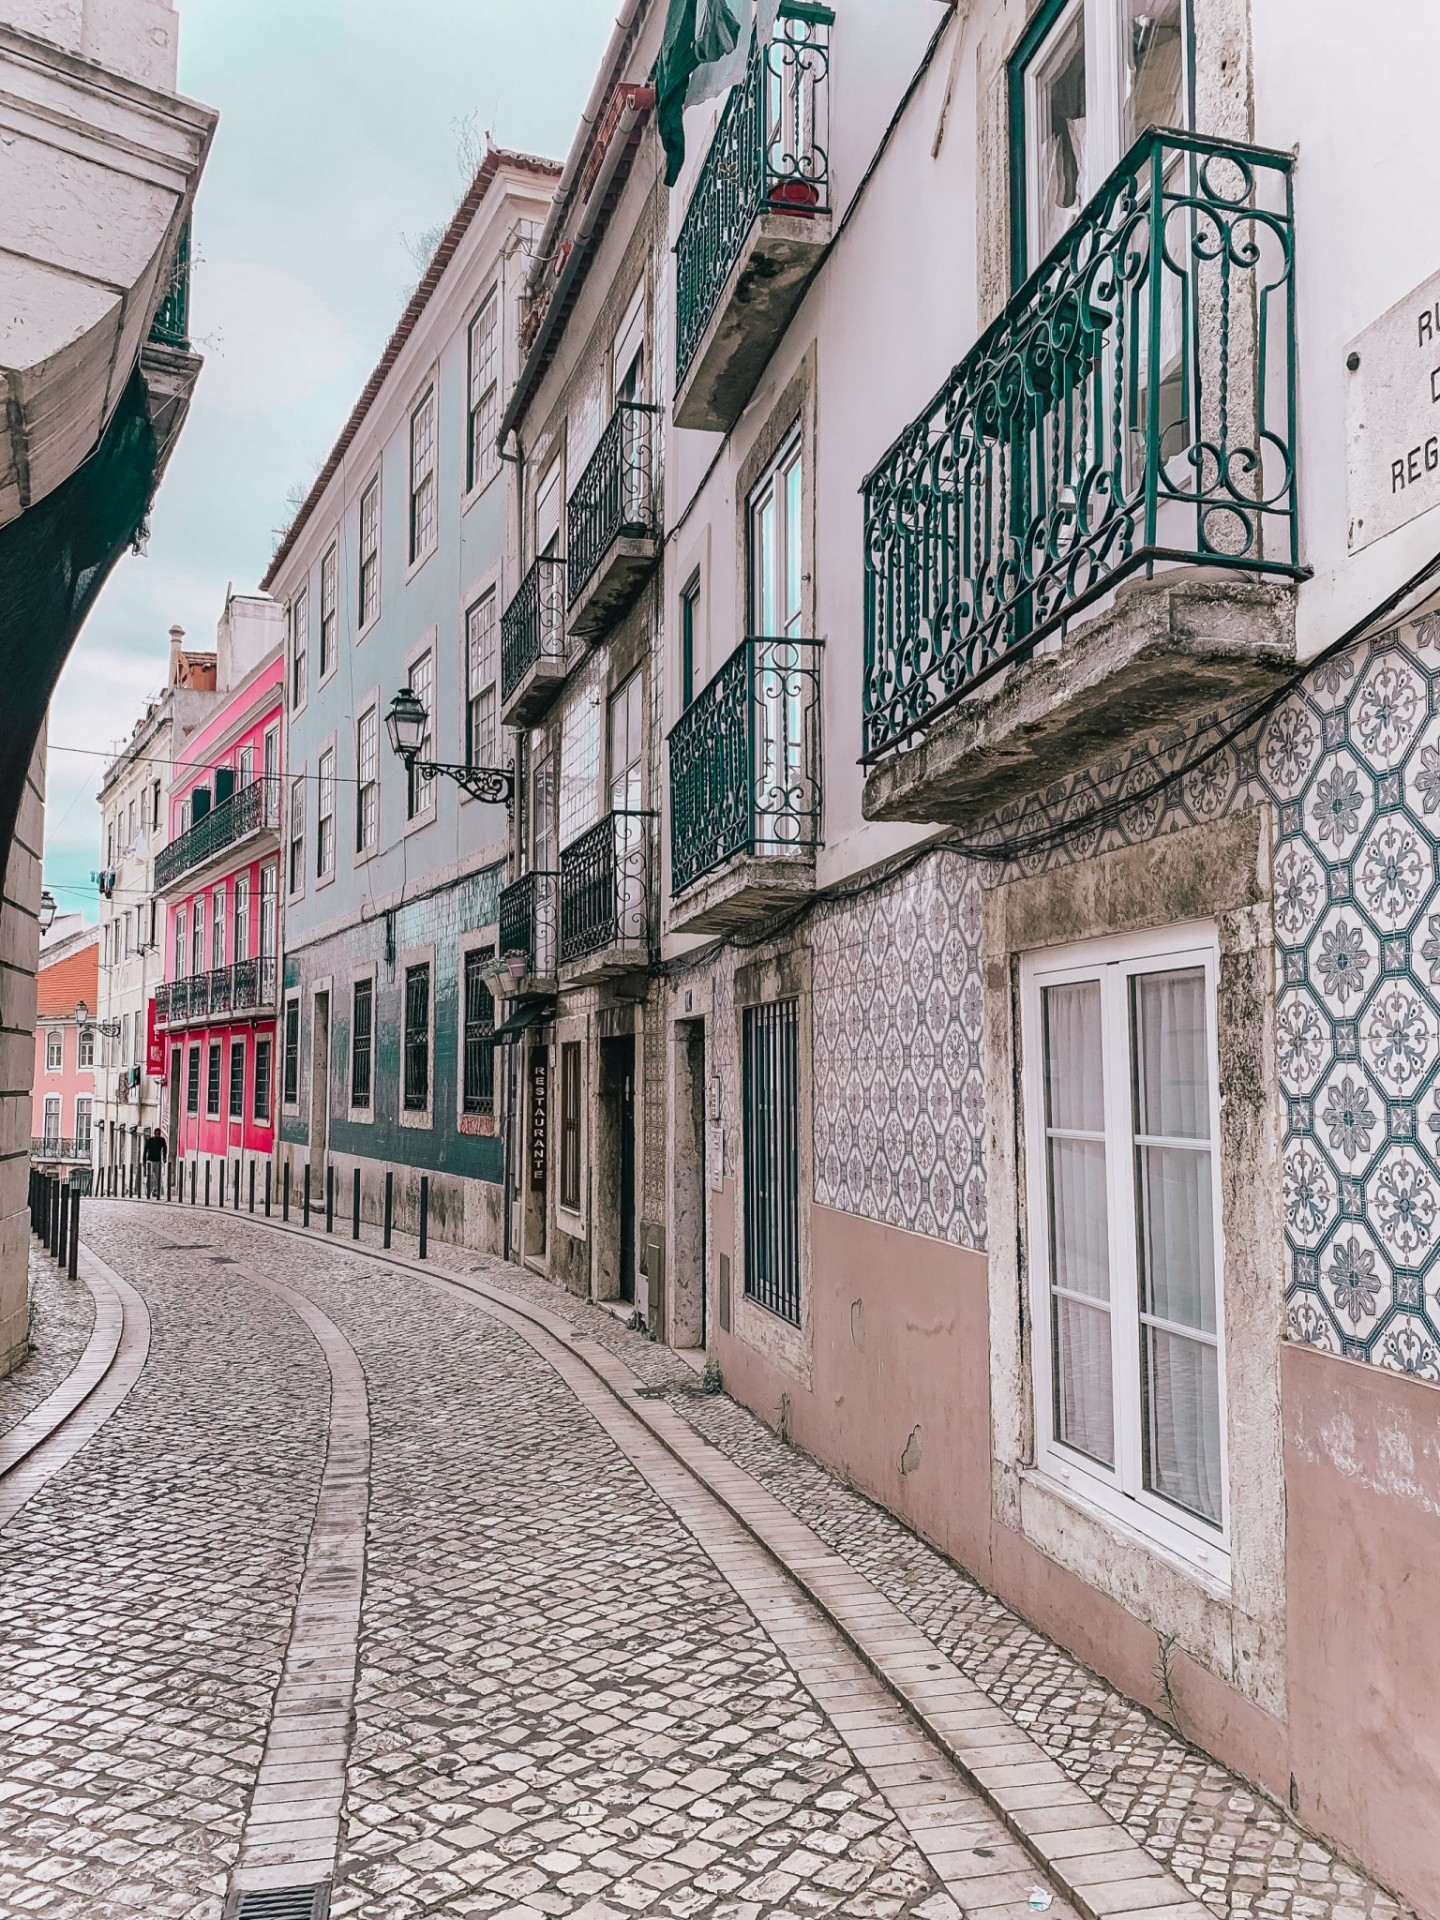 Lifestyle blogger Mollie Moore shares a Lisbon travel guide | Visiting Portugal: The Ultimate Lisbon Travel Guide & the Best Things to Do by popular London travel blogger, Mollie Moore: image of colorful buildings in Lisbon, Portugal.